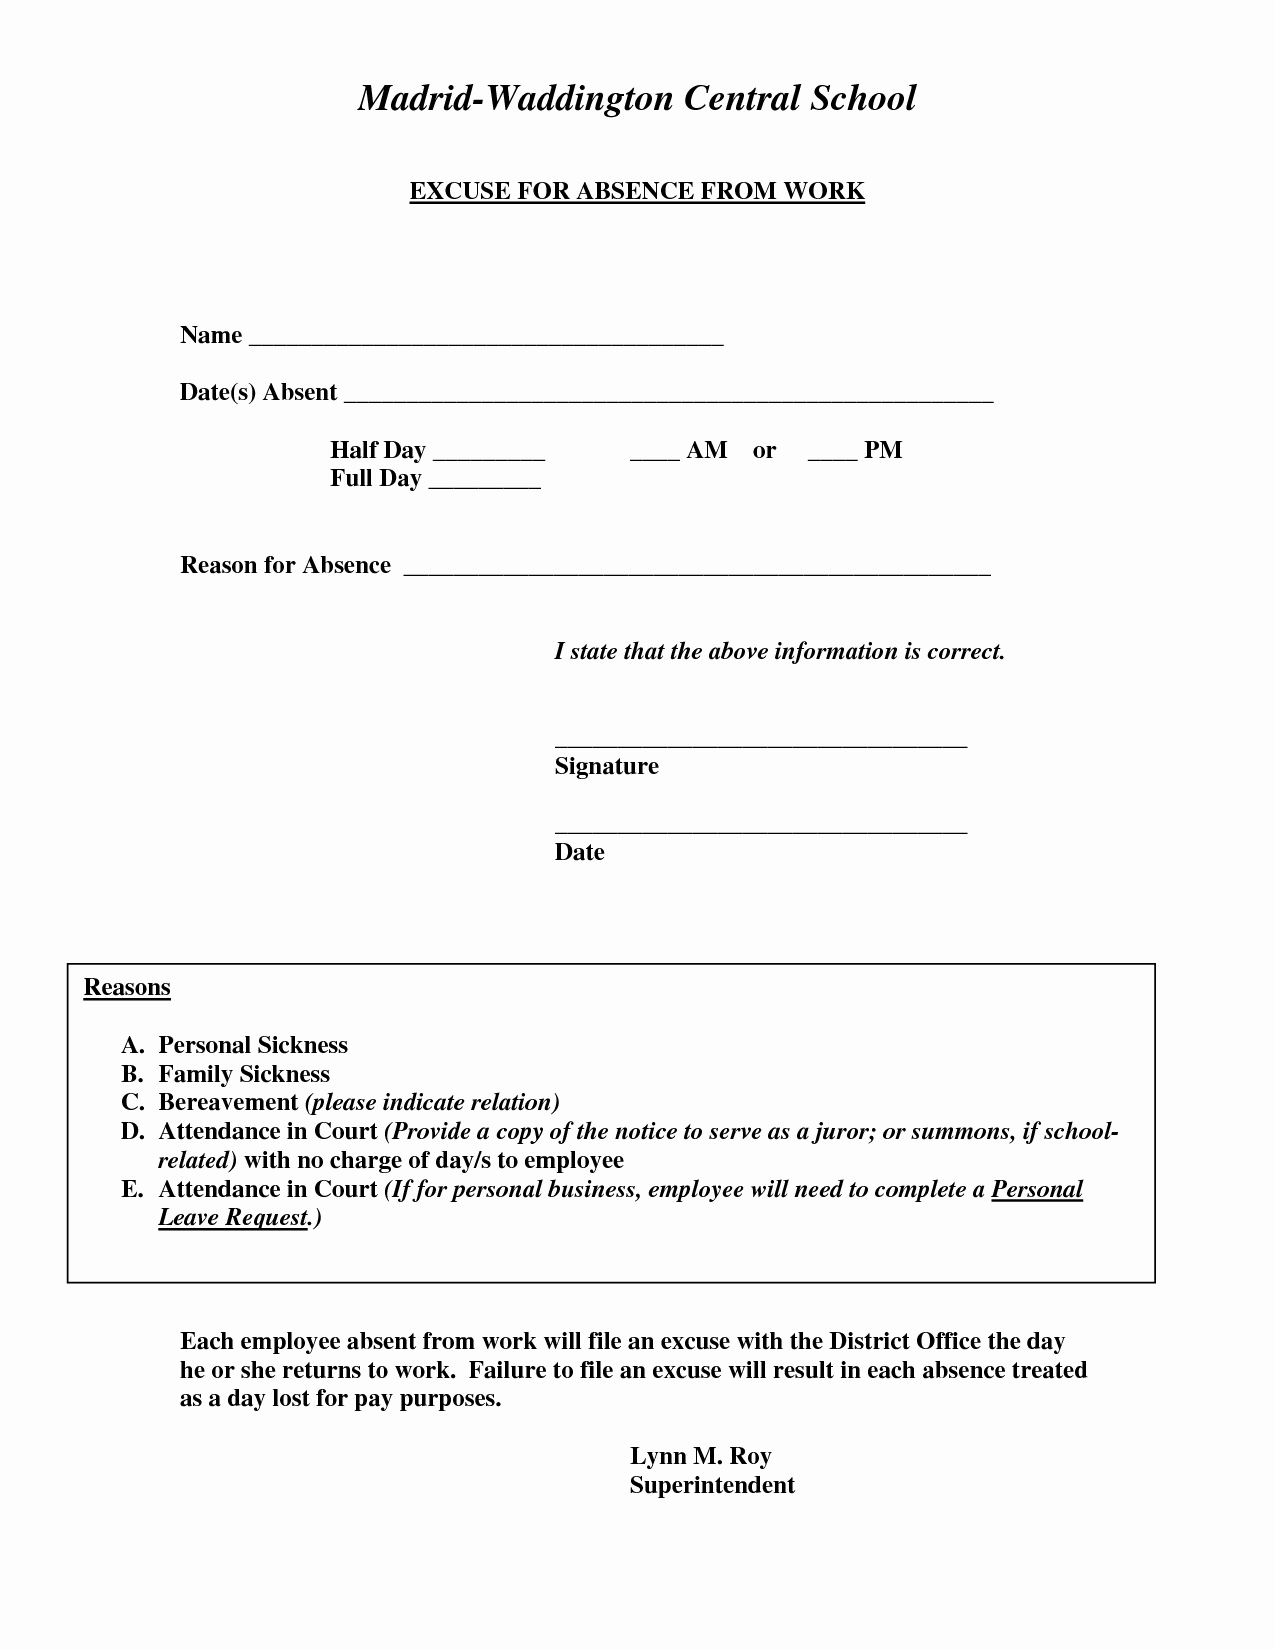 Doctors Notes for Work Template Inspirational Doctors Excuse for Work Template